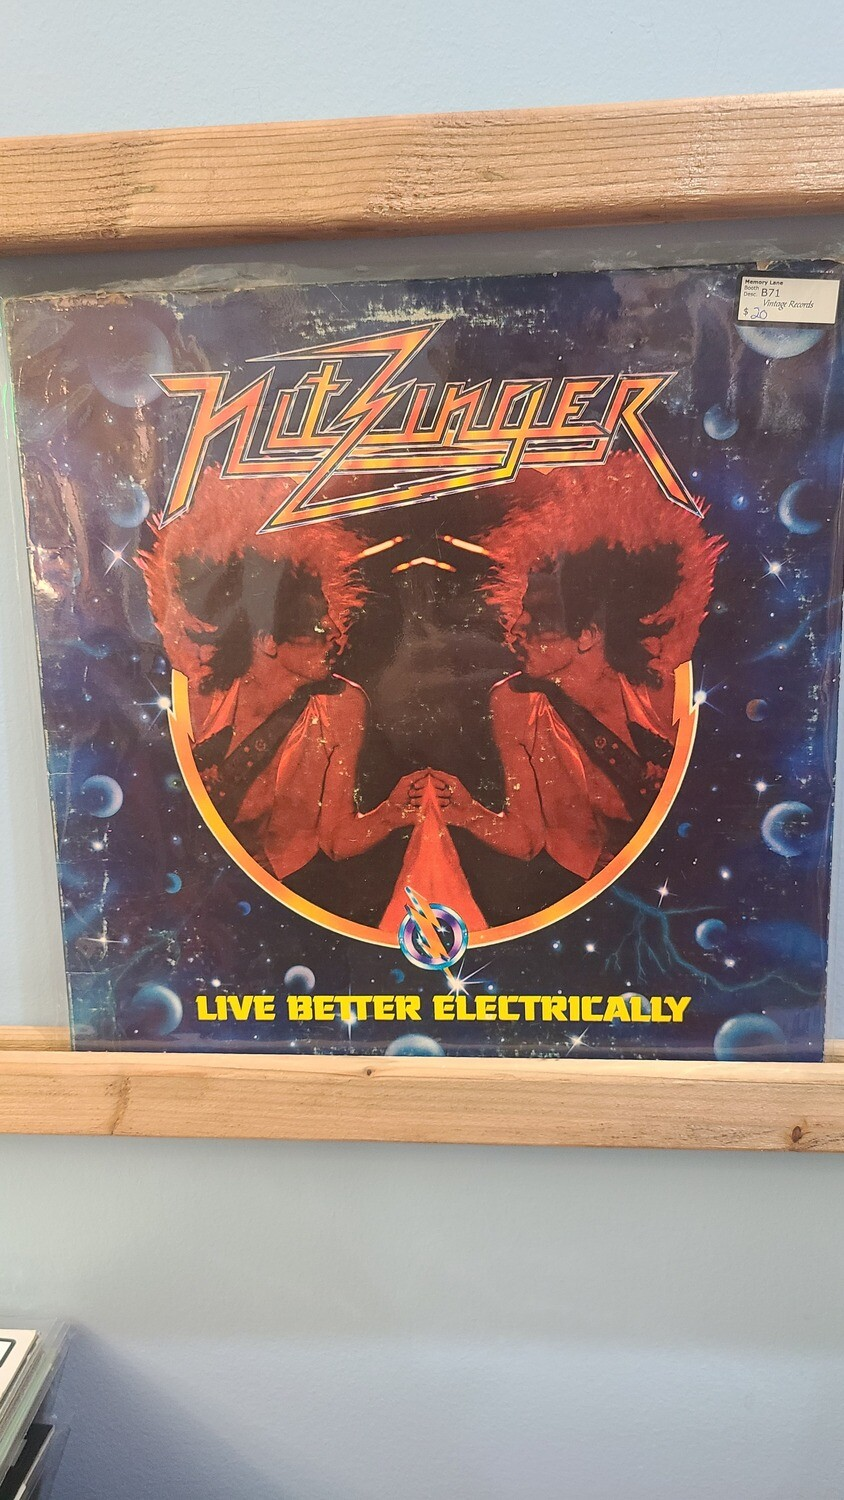 Nitzinger - Live Better Electrically